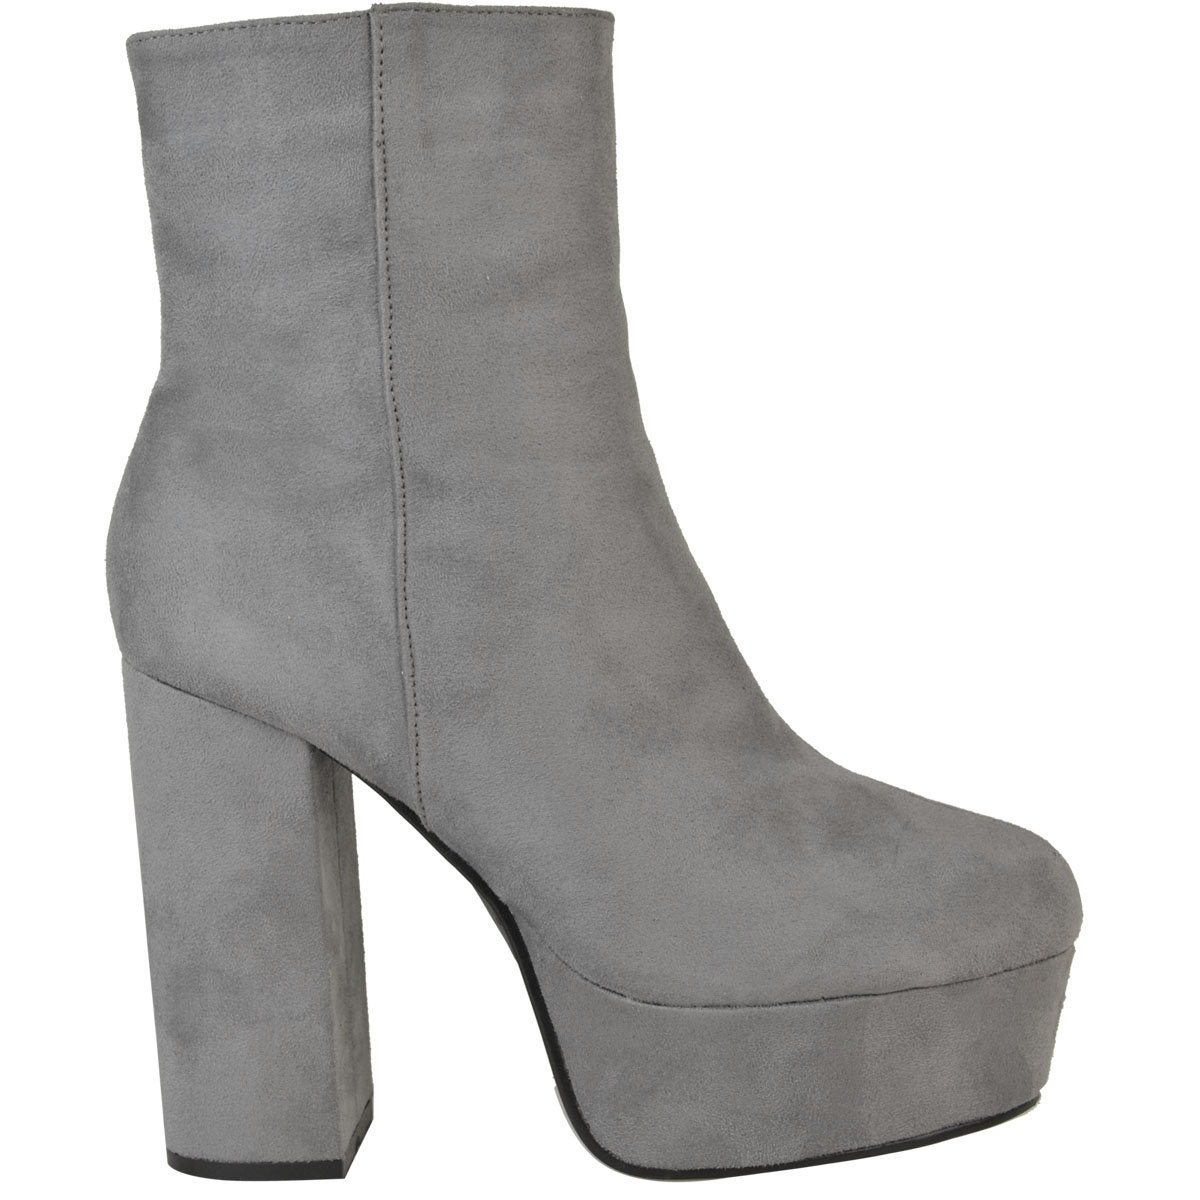 Womens Ladies Platforms Ankle Boots Chunky Block High Heel